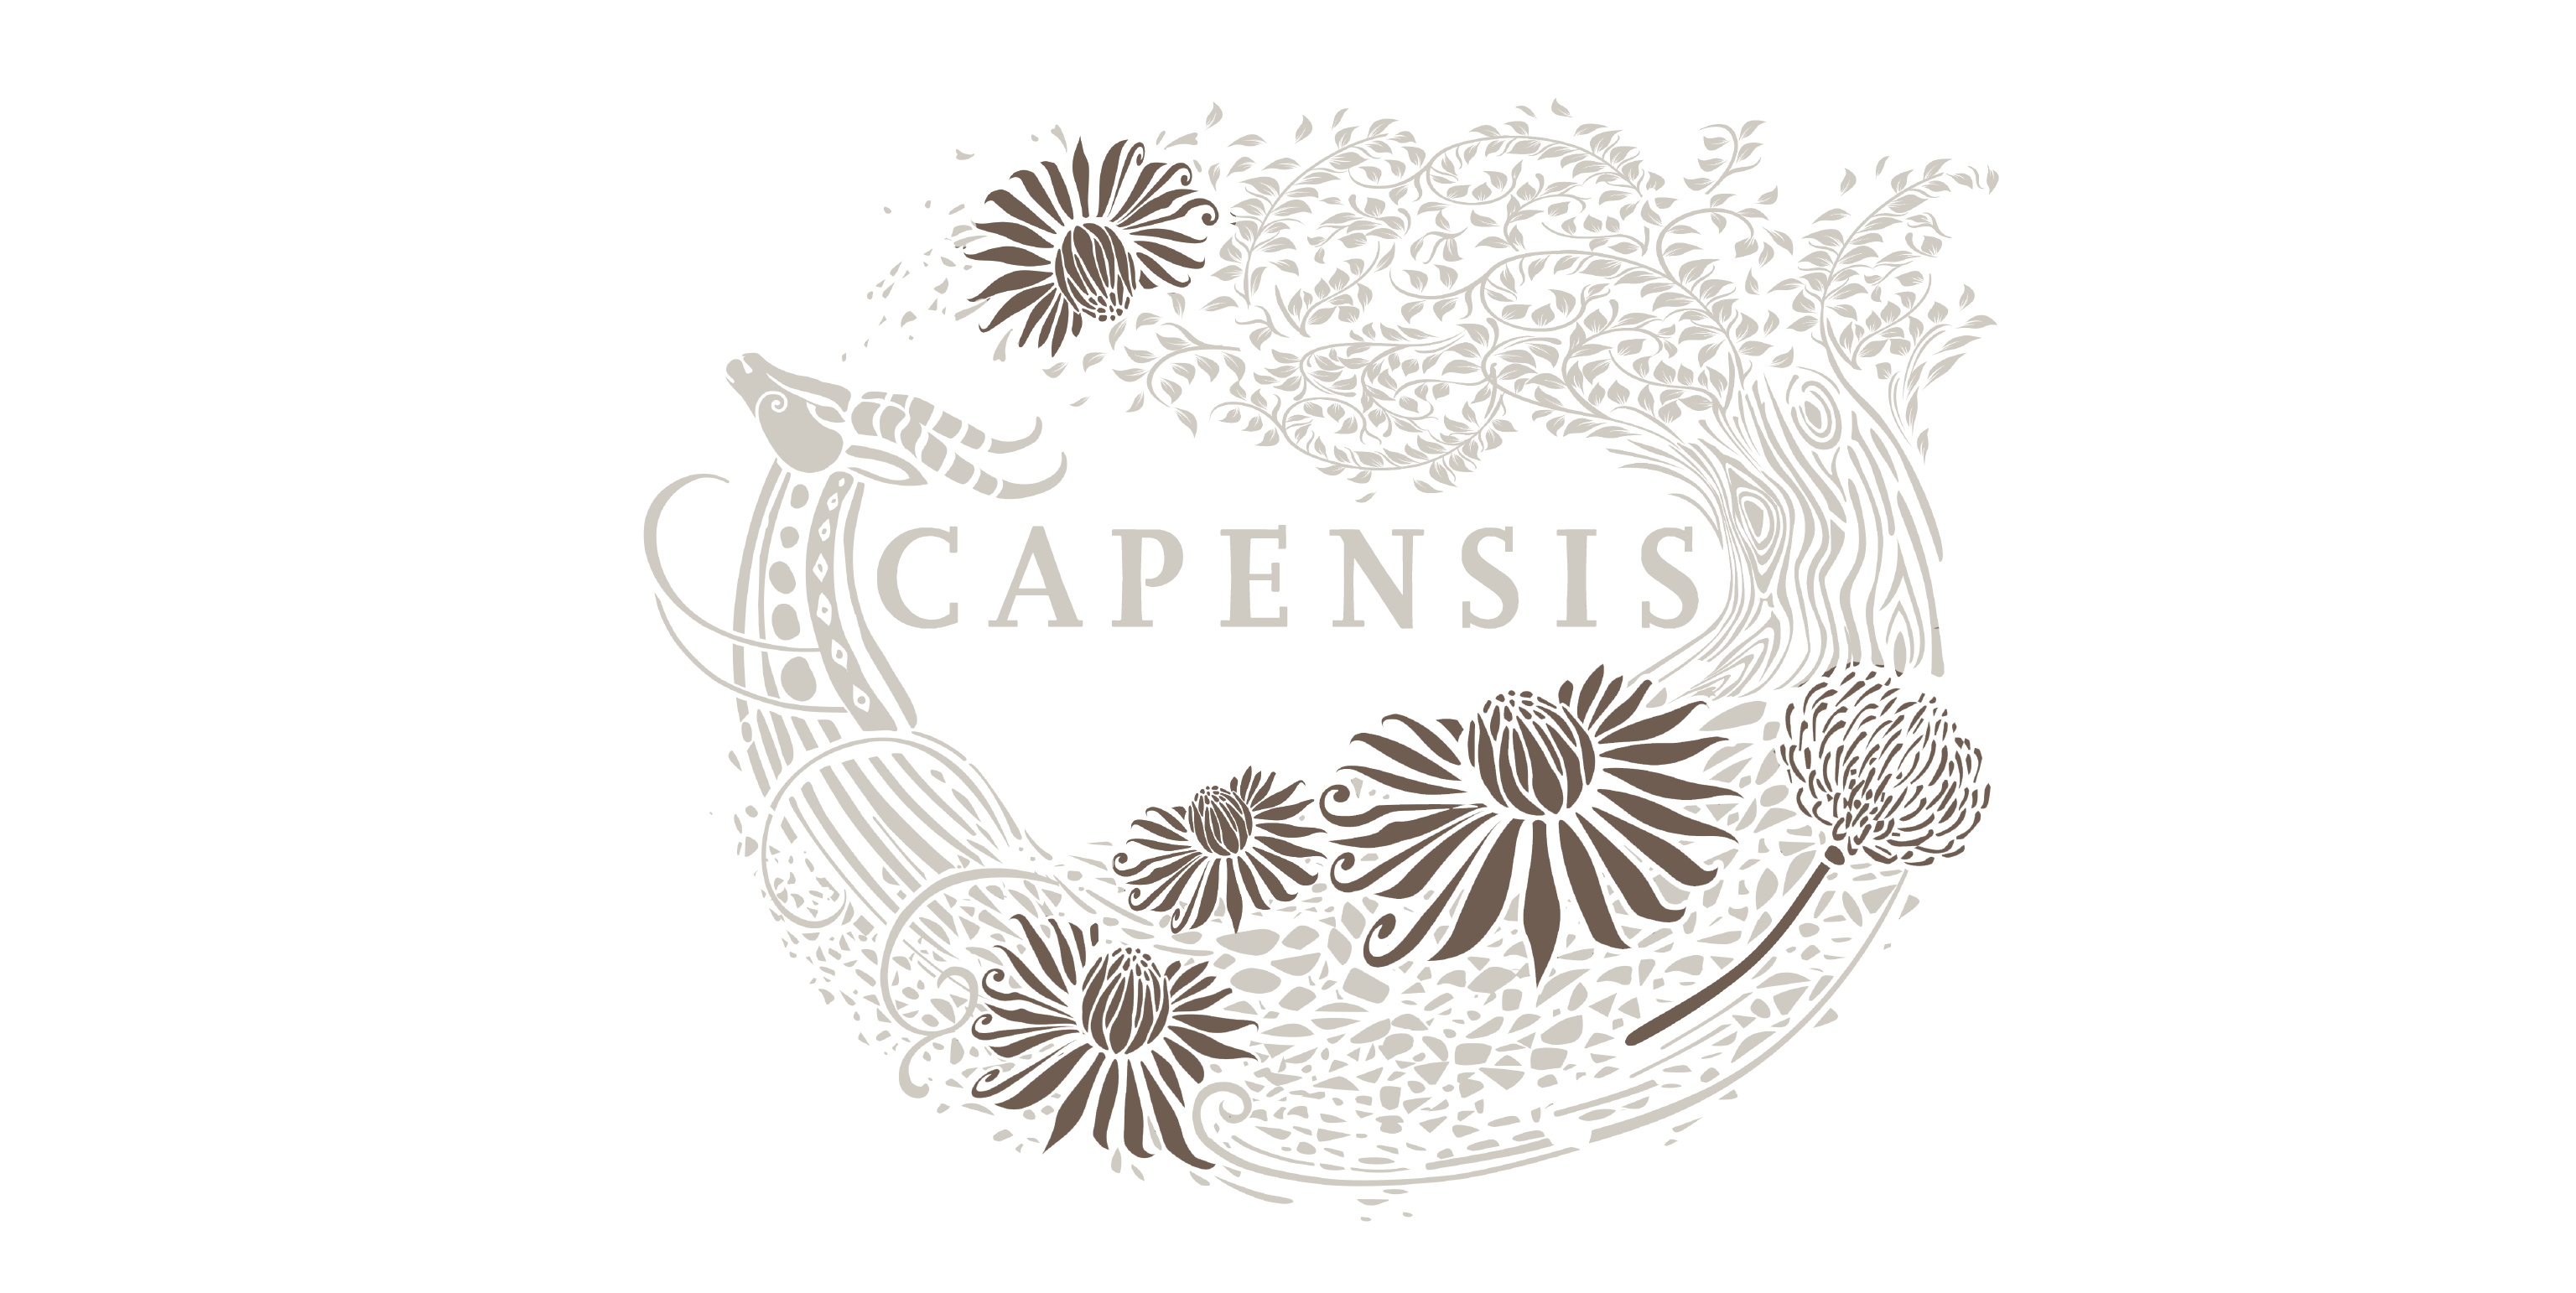 Capensis label with King Protea highlighted